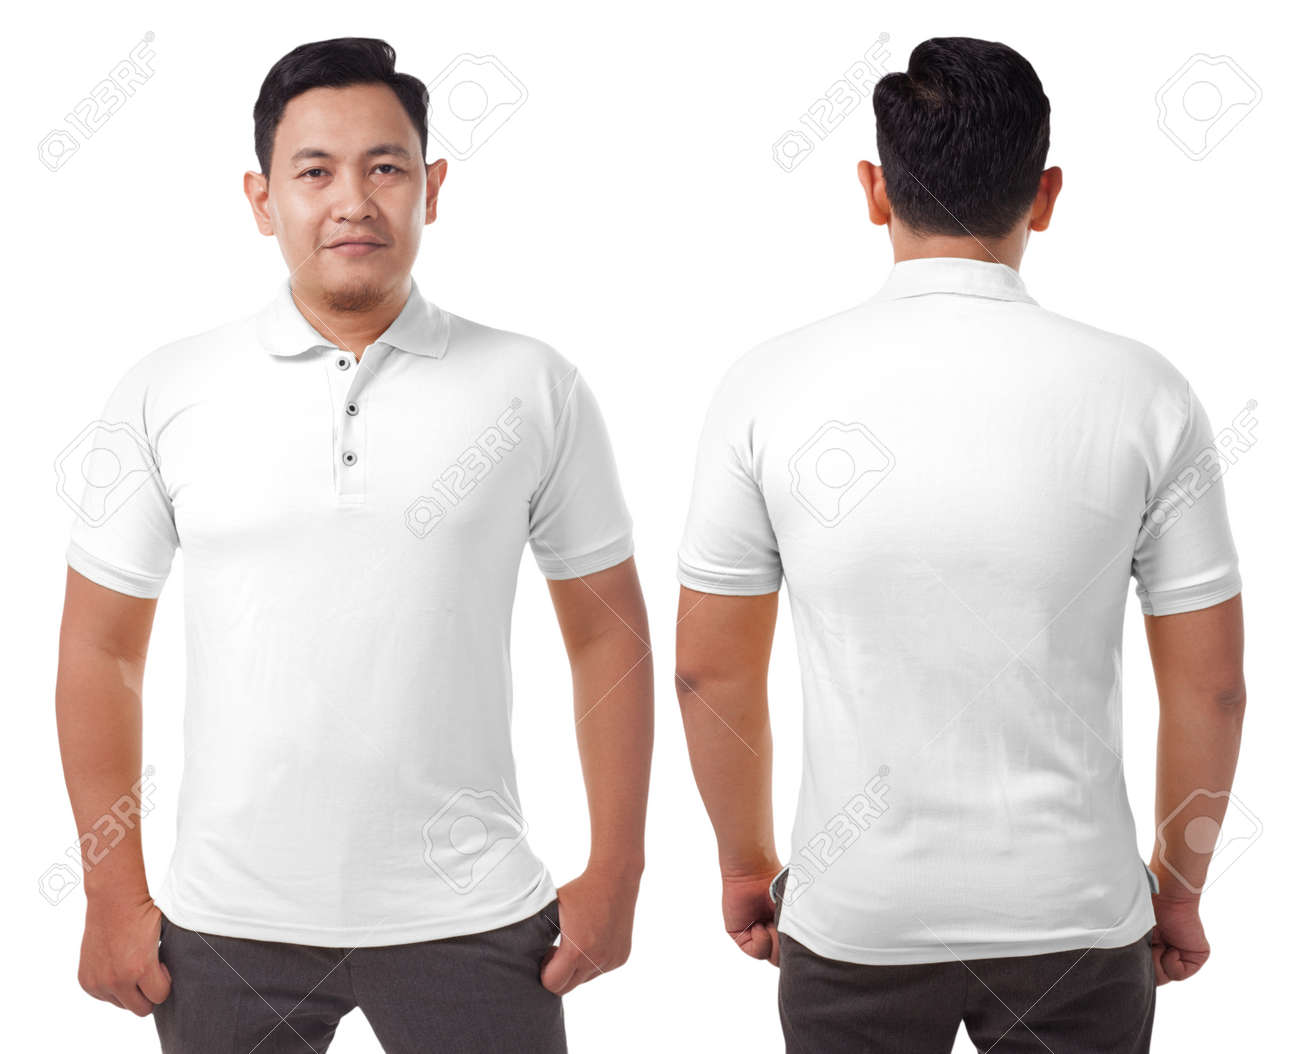 5caac737 Blank collared shirt mock up template, front and back view, Asian male  model wearing